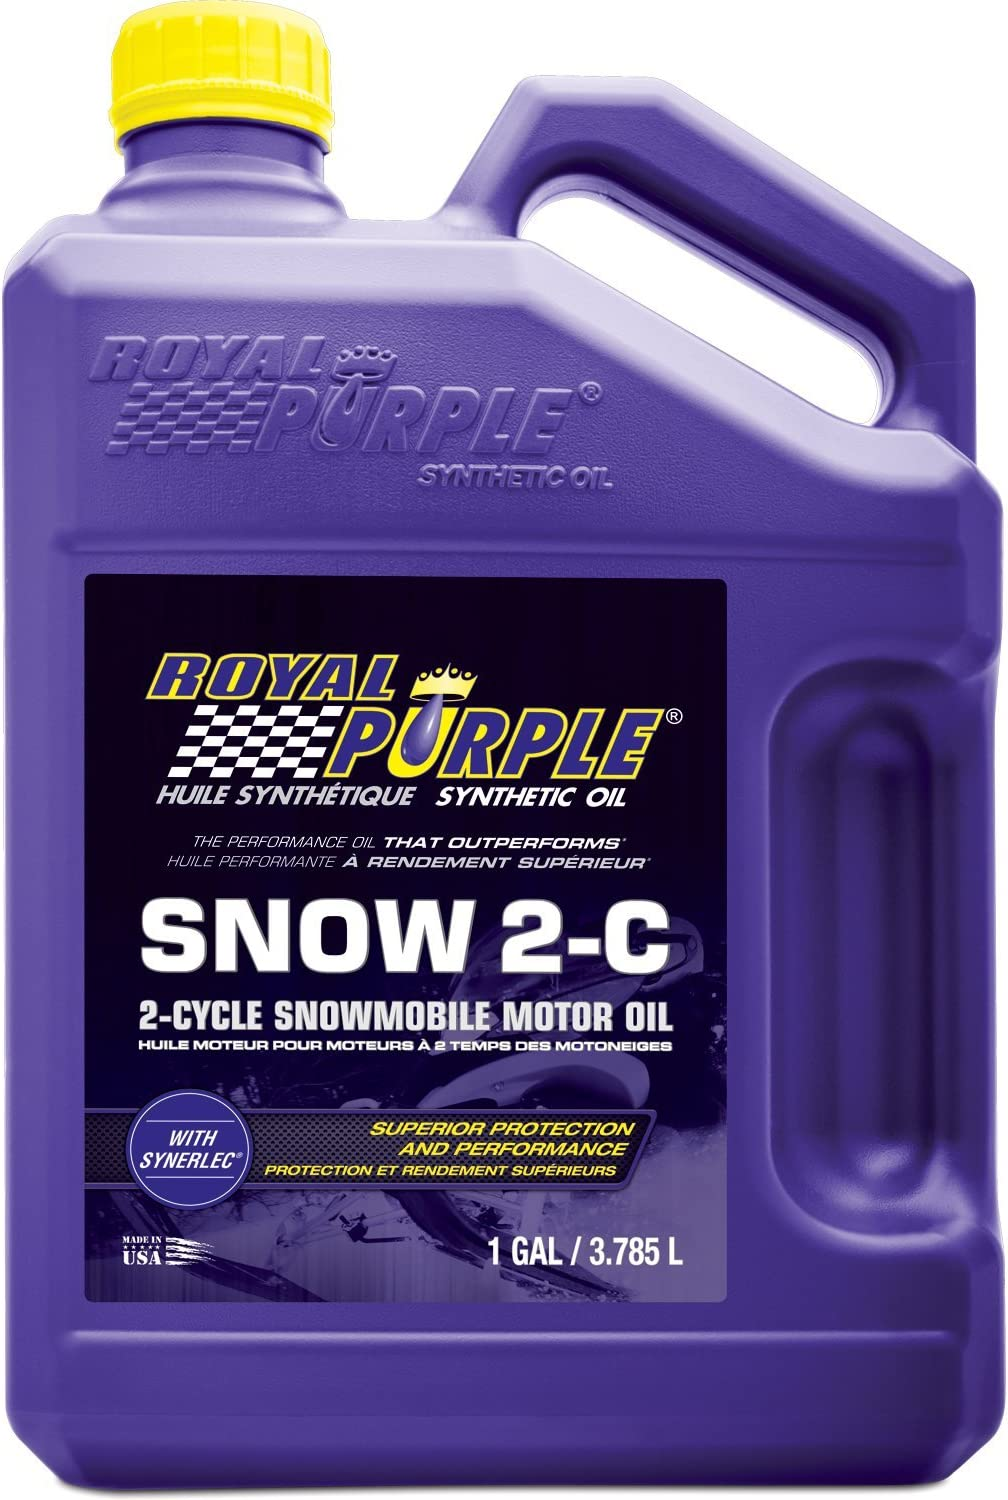 Royal Purple 04511 Snow 2-C High Performance Synthetic 2-Cycle Snowmobile Oil - 1 Gallon